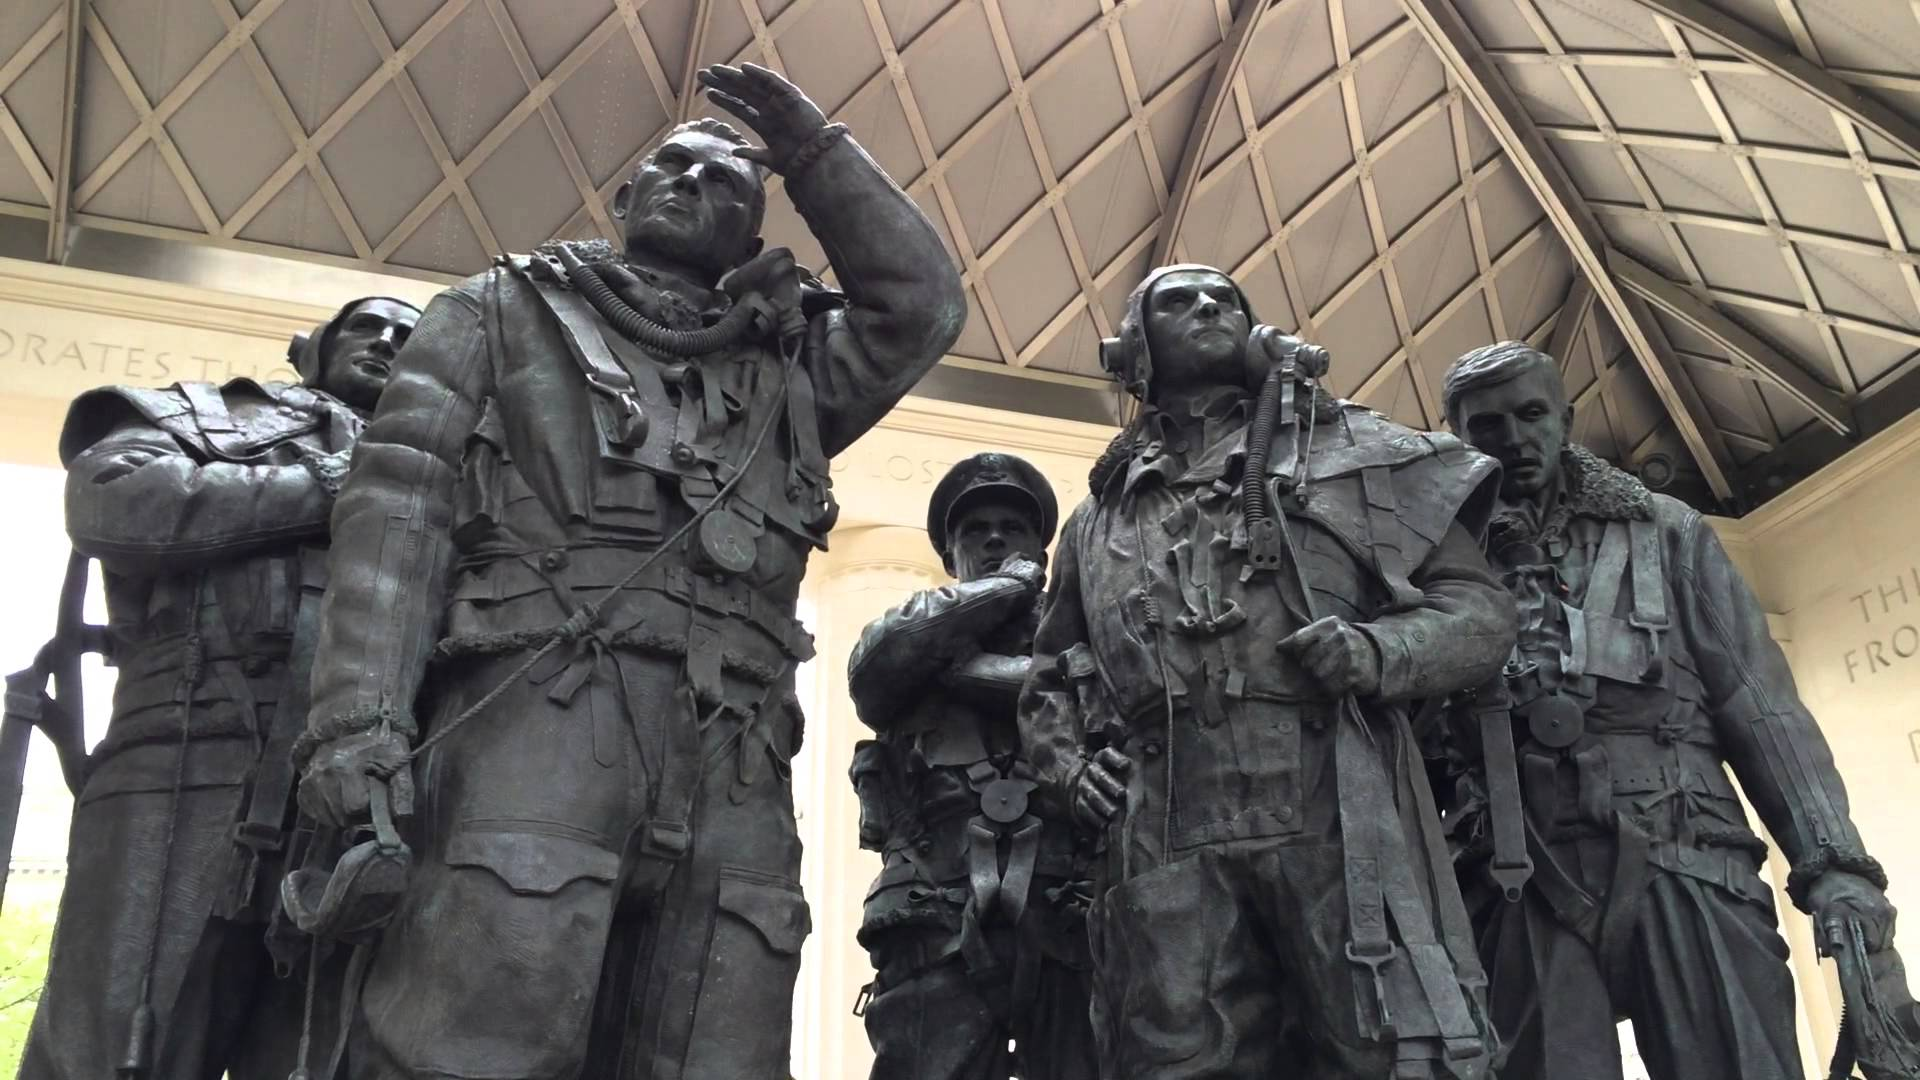 The Bomber Command Memorial at Hyde Park commemorates the 55,573 who died while serving in the Bomber Command during the Second World War.